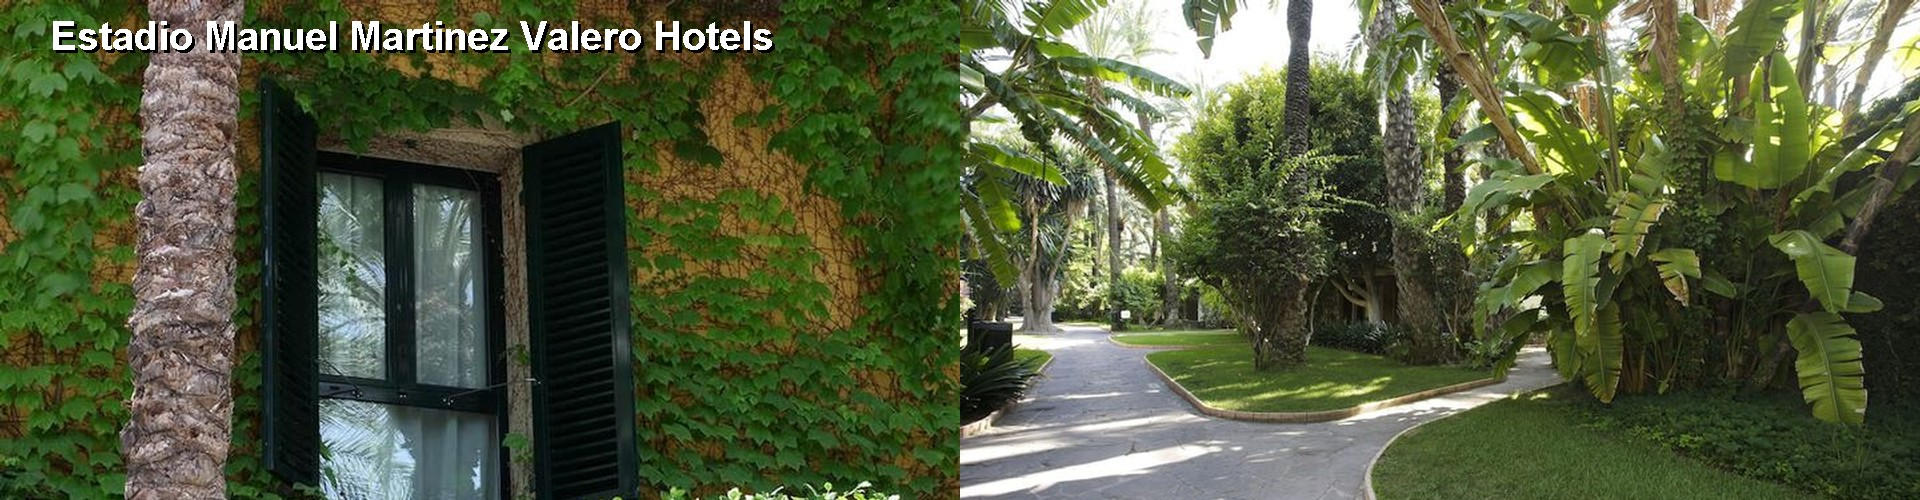 5 Best Hotels near Estadio Manuel Martinez Valero